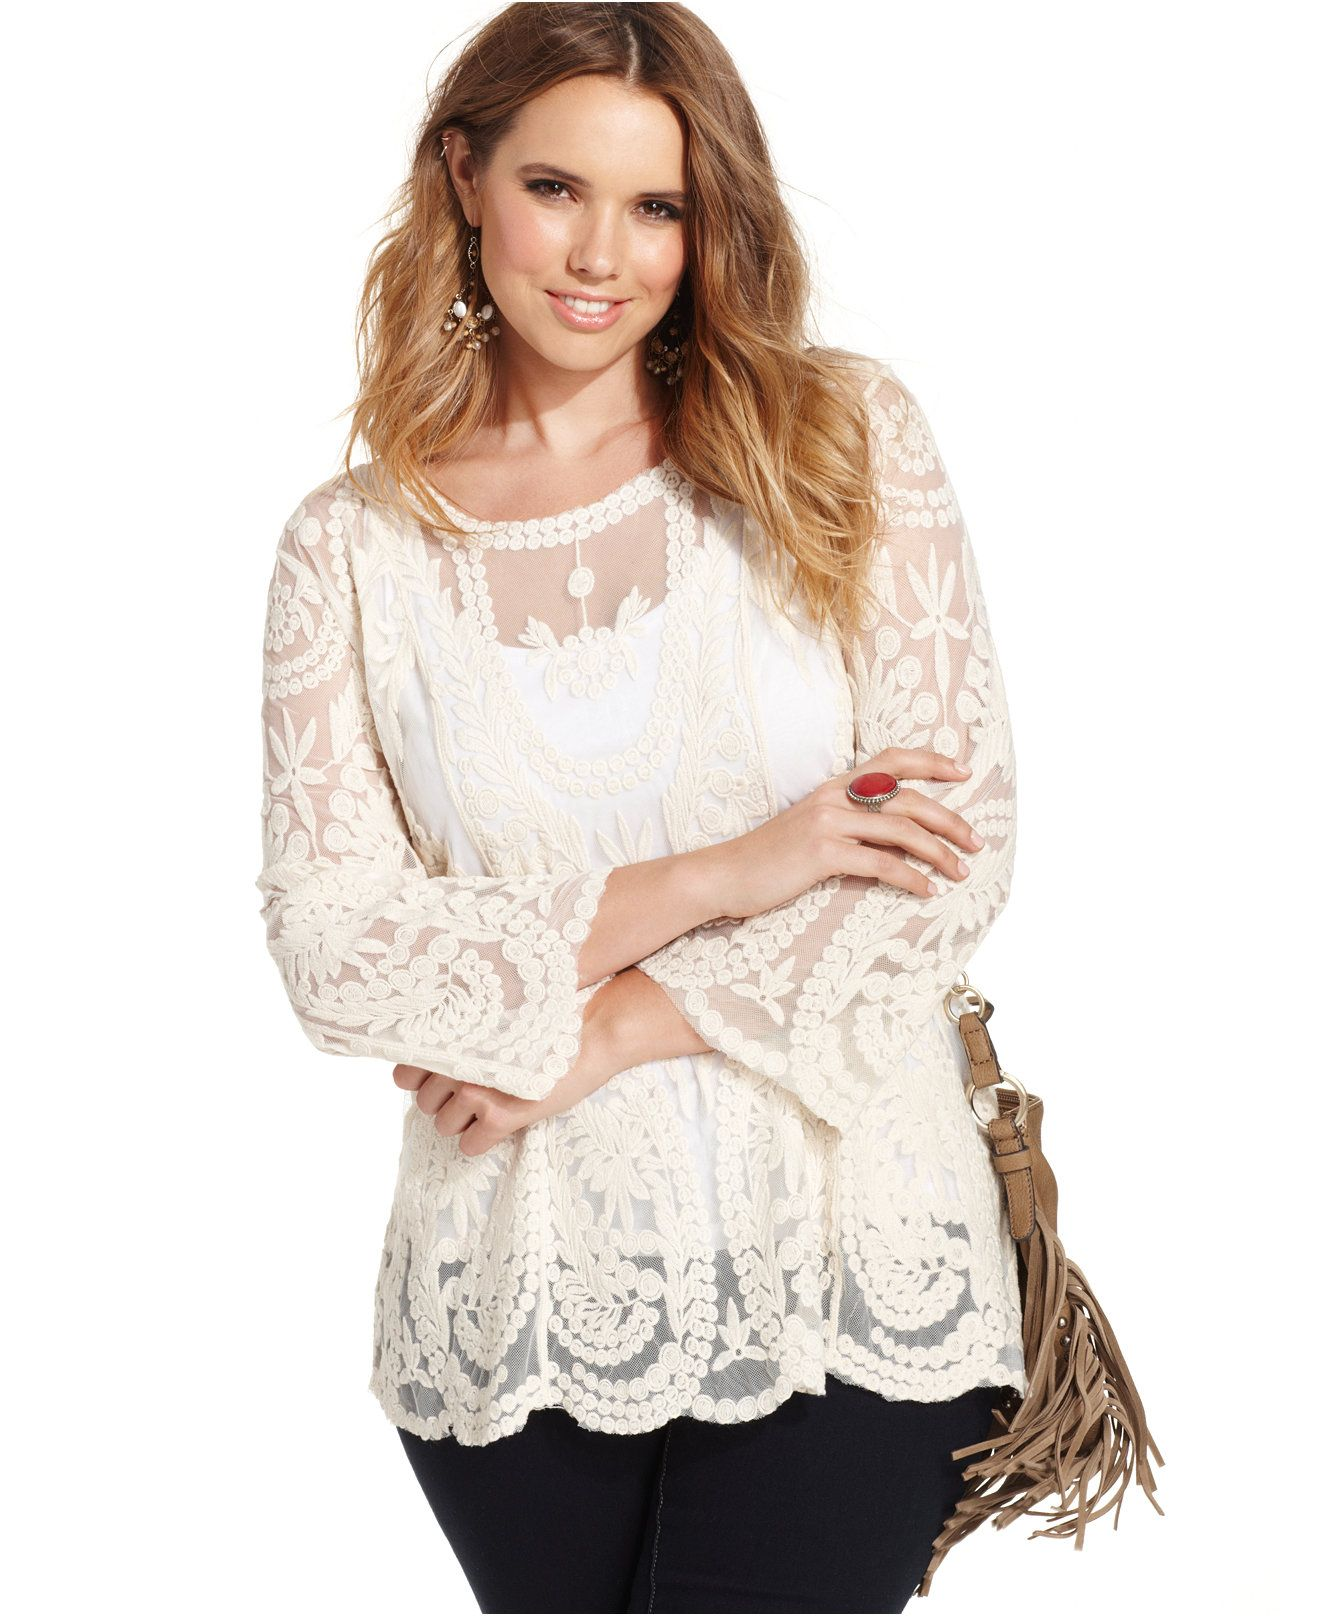 ba322bbea4472 American Rag Plus Size Three-Quarter-Sleeve Embroidered Top - Tops - Plus  Sizes - Macy s